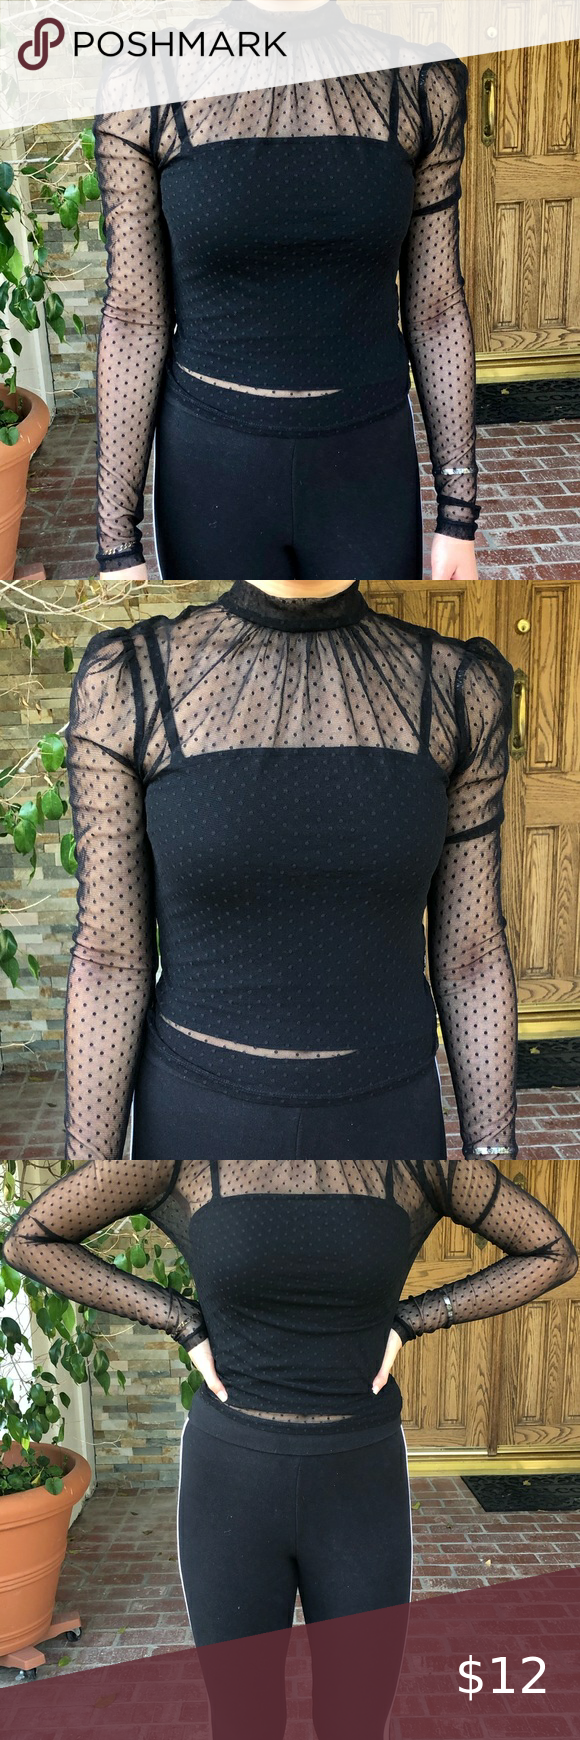 Sheer Clip Dot Top F21 In 2020 Clothes Design Dot Tops Fashion